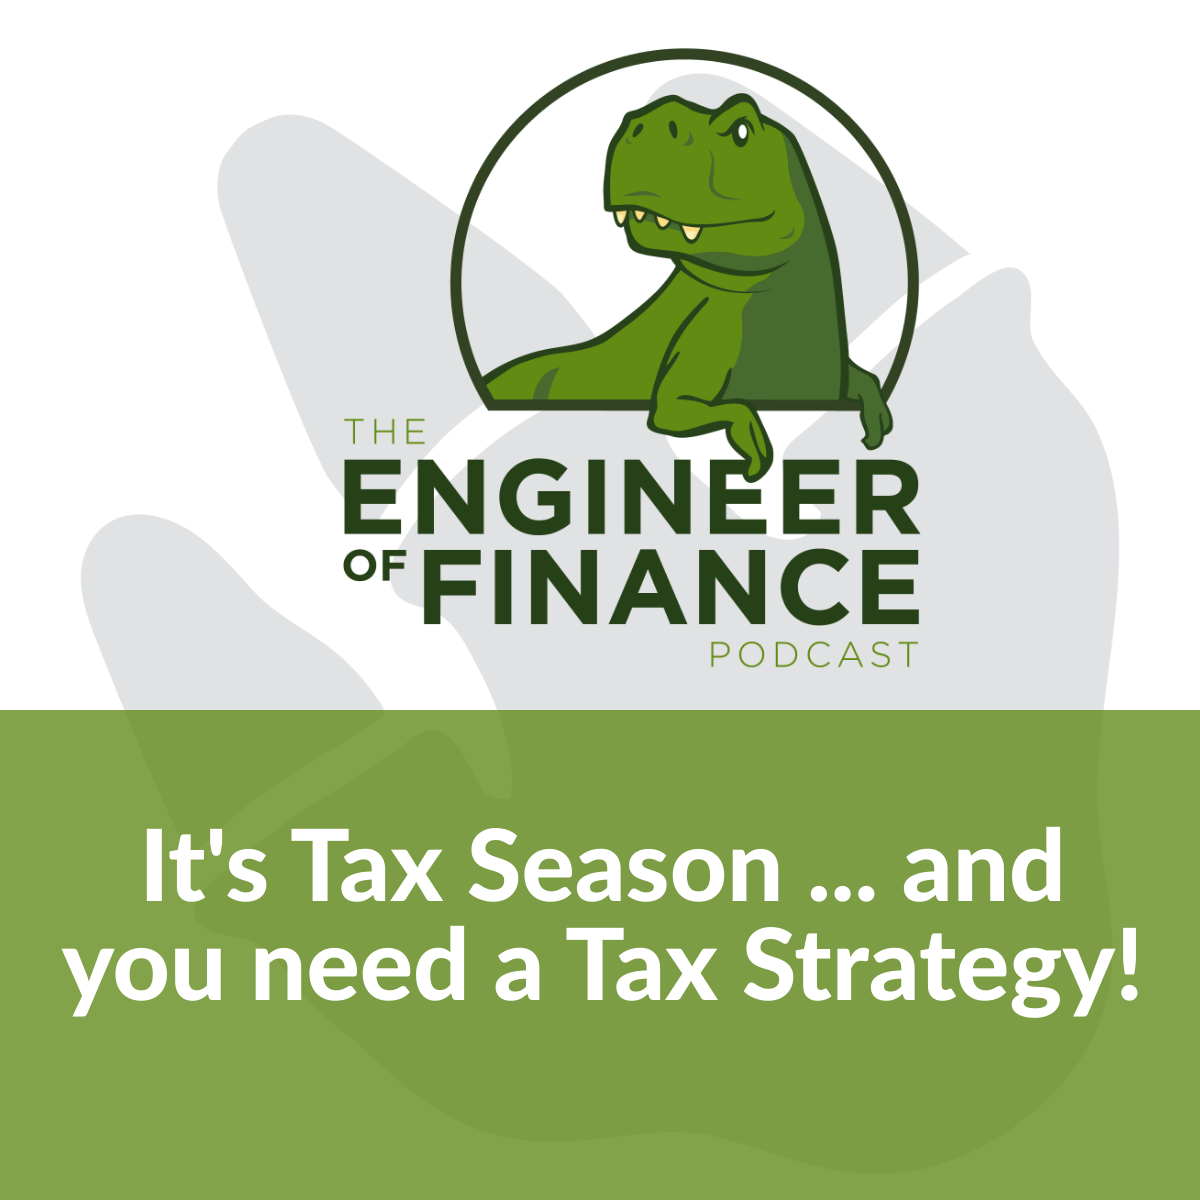 It's Tax Season … and You Need a Tax Strategy! – Episode 137